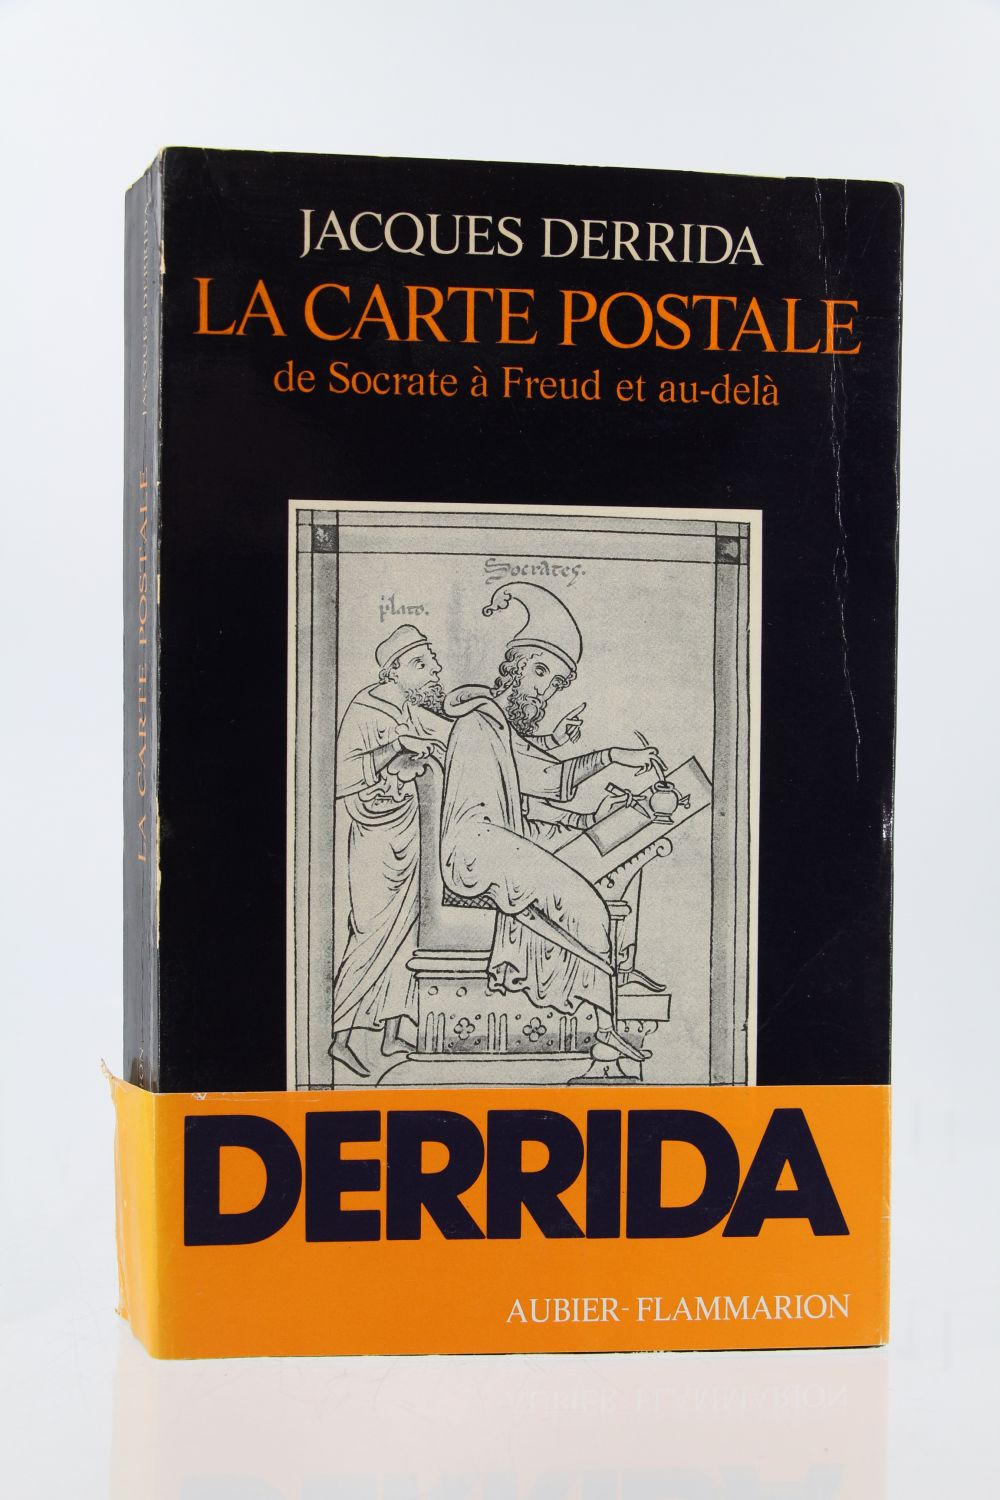 derrida la carte postale de socrate freud et au del. Black Bedroom Furniture Sets. Home Design Ideas